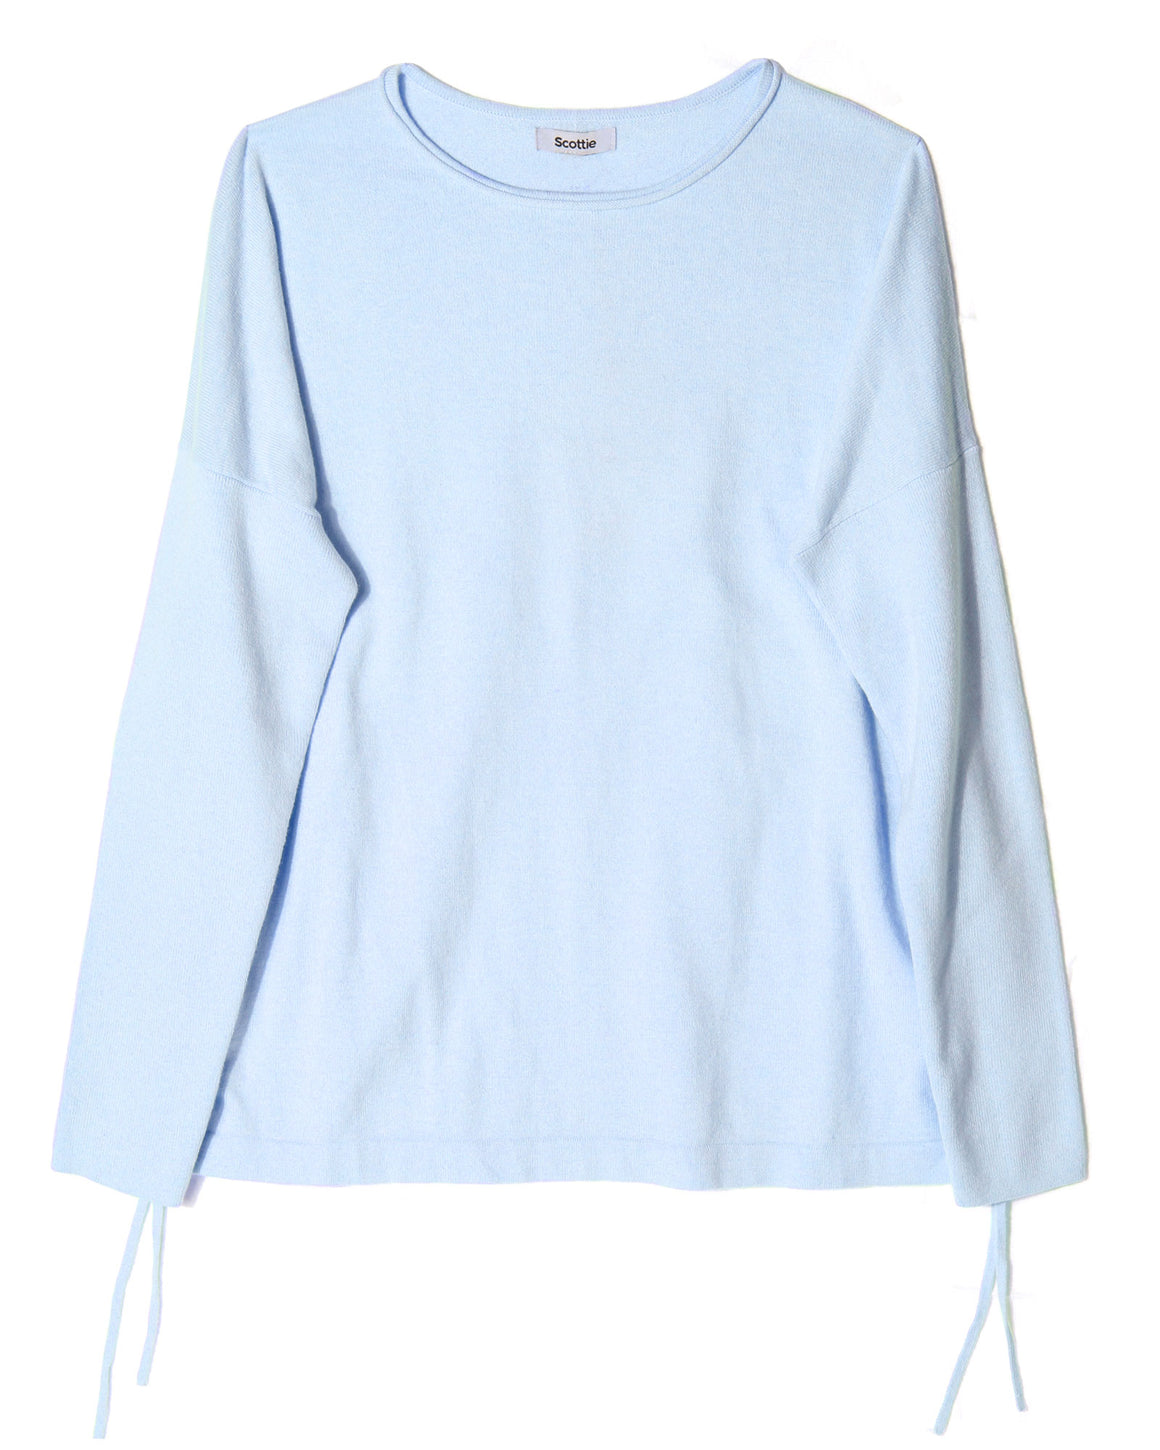 Cropped Jumper with Side Ties - Blue Flax